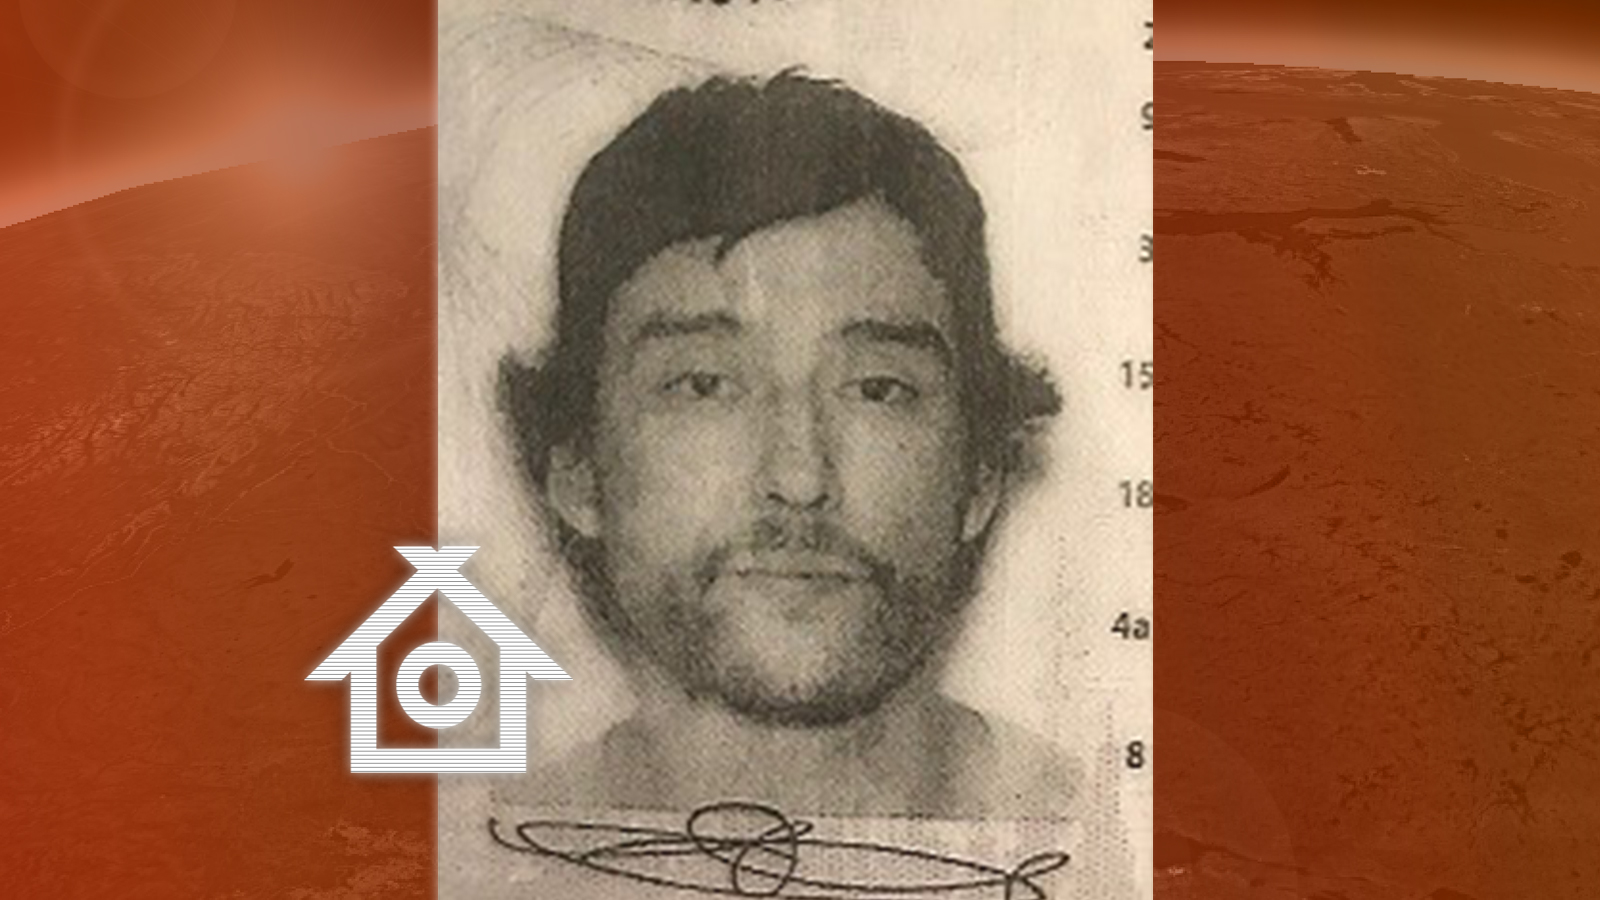 An RCMP handout image of Detocho Anis Abel, reported missing in March 2018